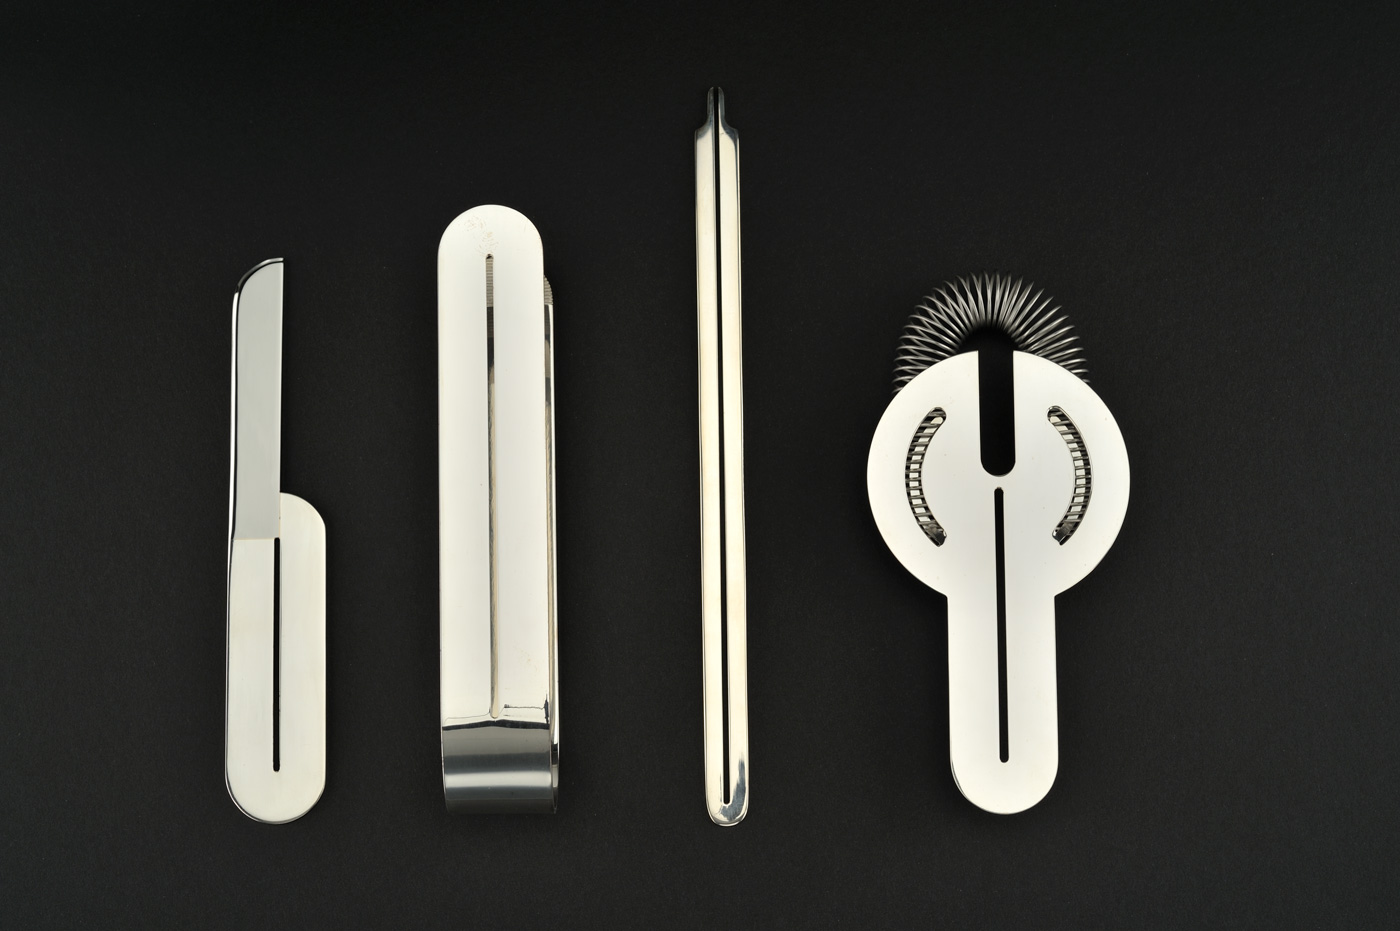 Set of four rounded and perforated bar tools in shining metal.